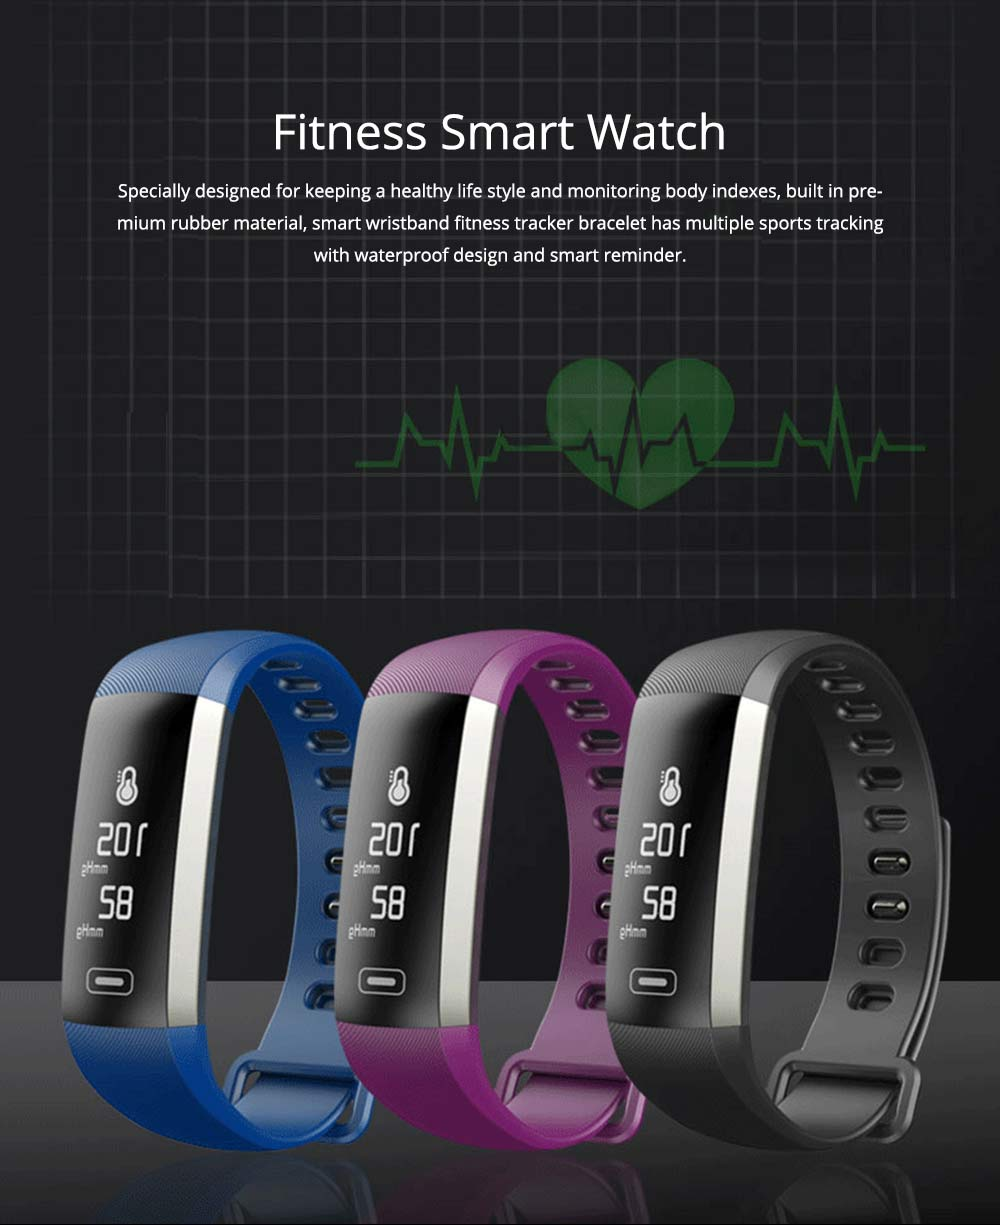 Smart Wristband Fitness Tracker Bracelet for Monitoring Heart Rate Blood Pressure Watch Pulse Meter Oxygen 0